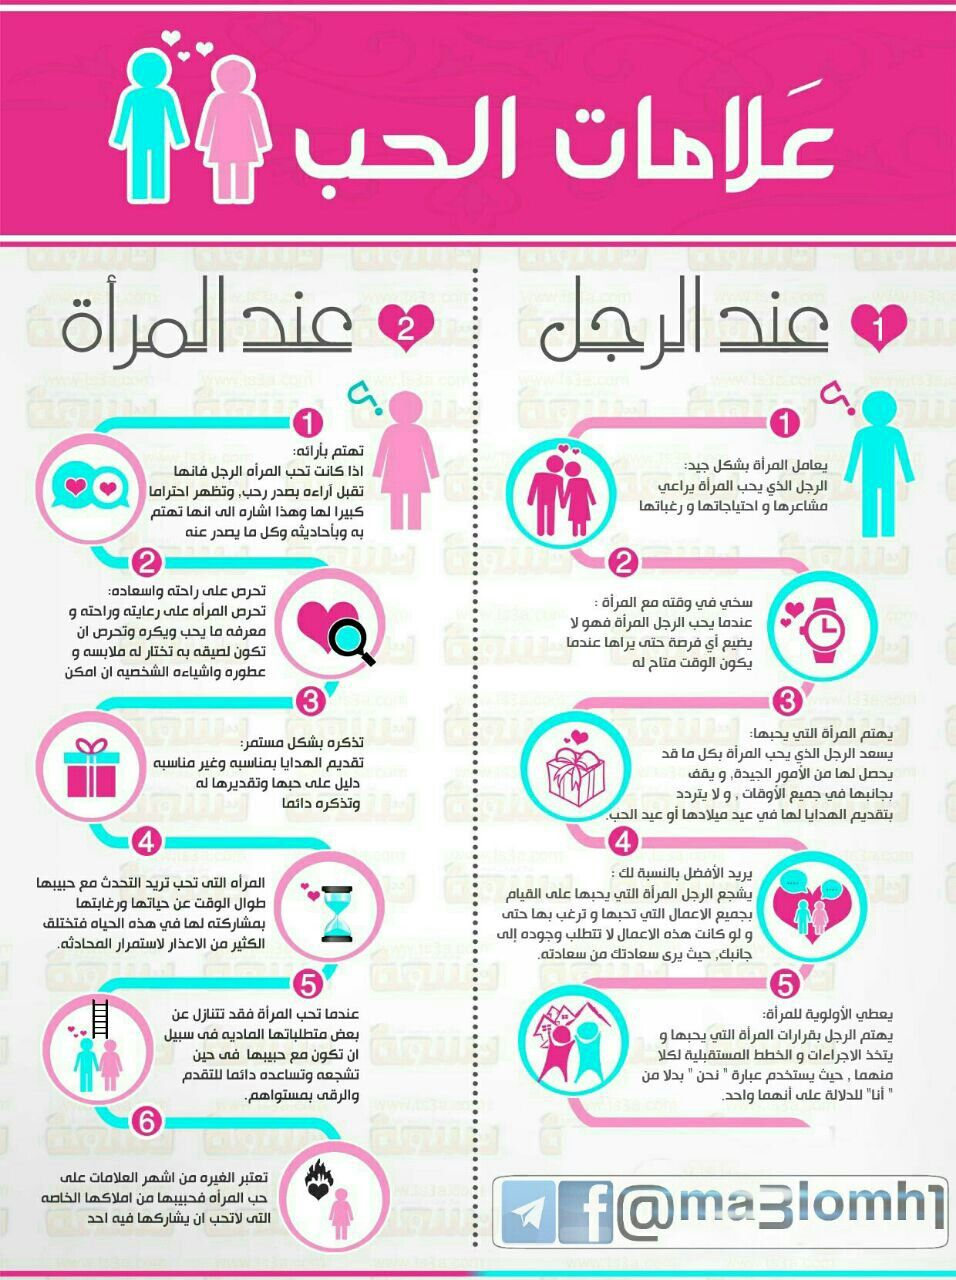 Pin By أنوار محمود رمضان On معلومات عامة Love Words Sweet Words Arabic Love Quotes